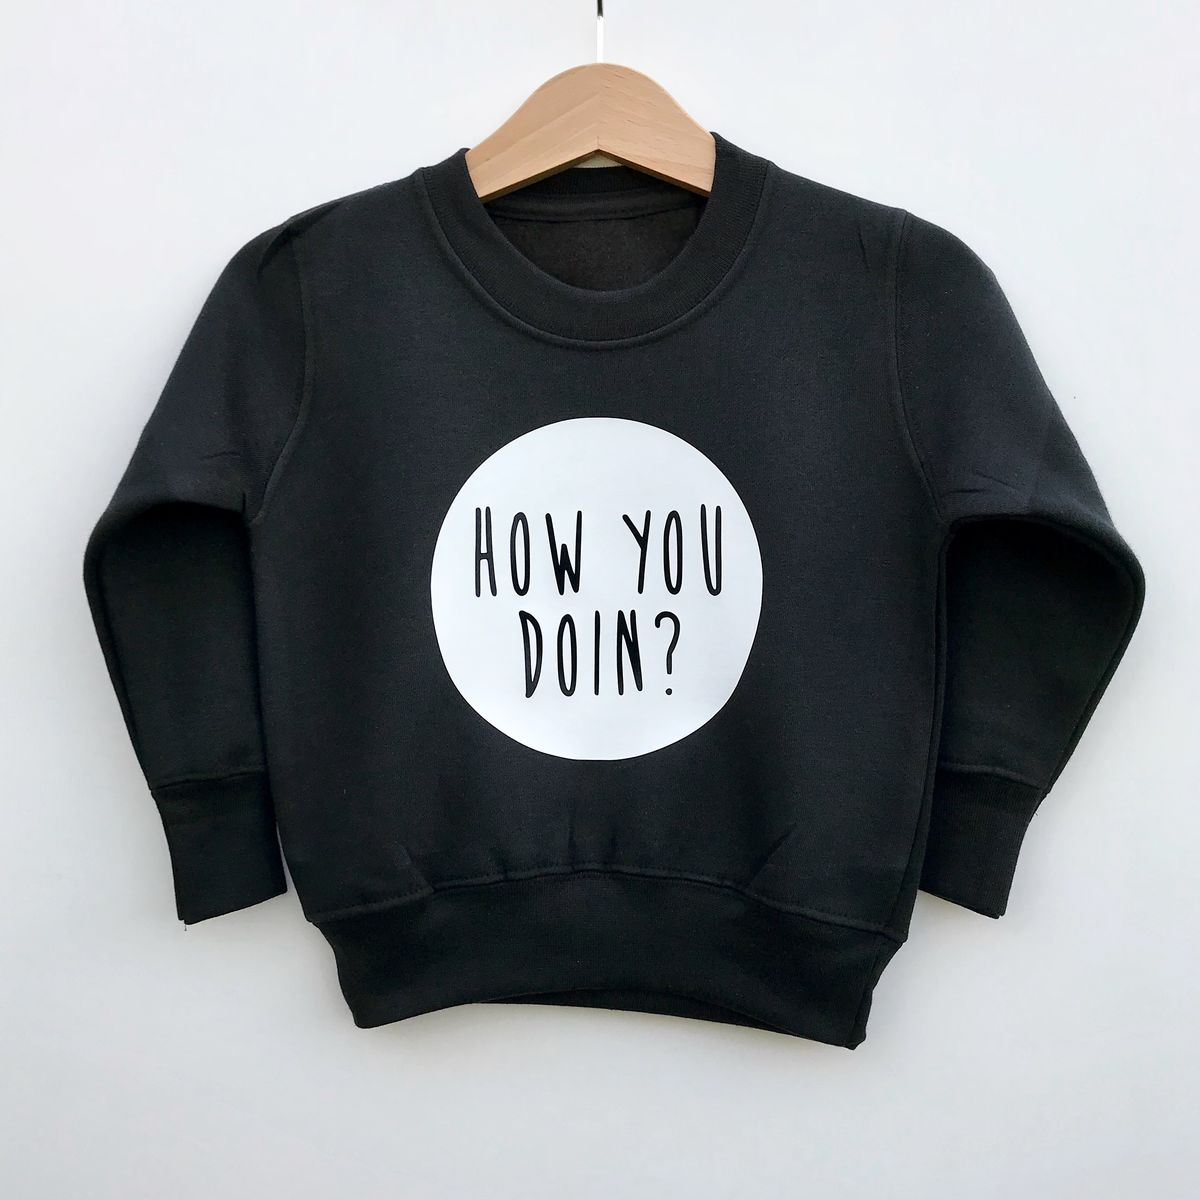 How You Doin Sweatshirt - product images  of